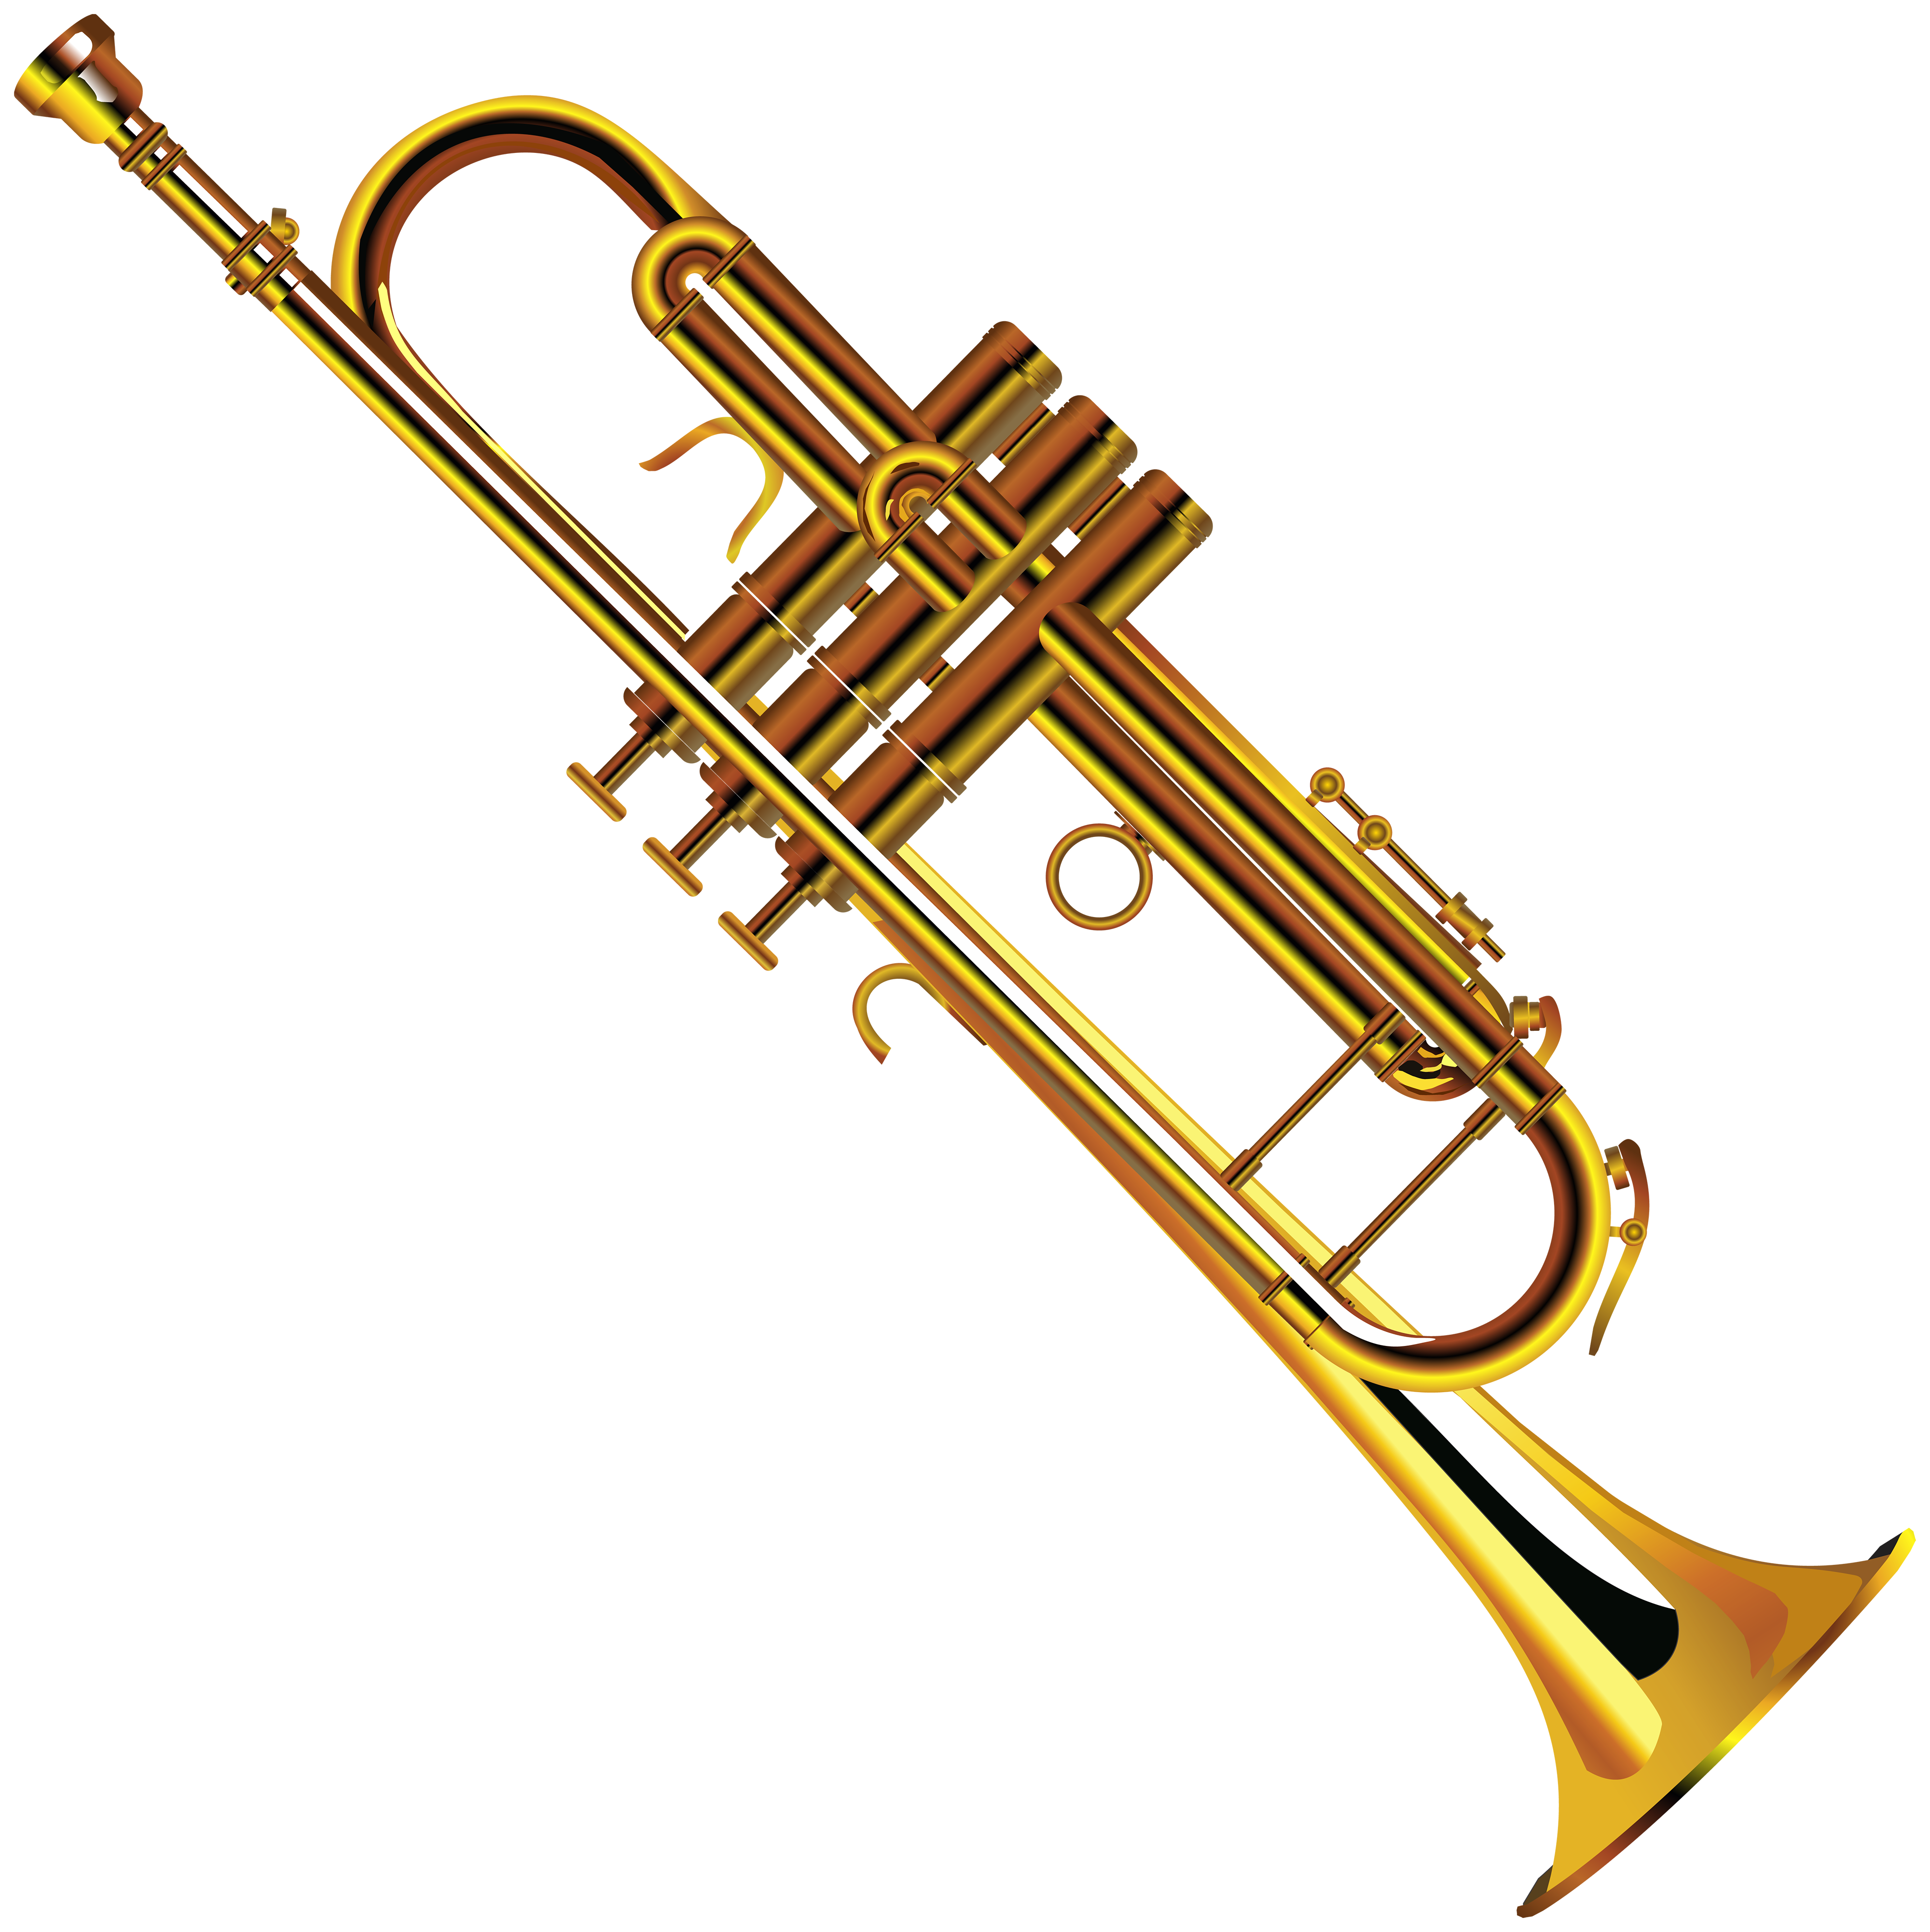 Trumpet Transparent & PNG Clipart Free Download - YA-webdesign